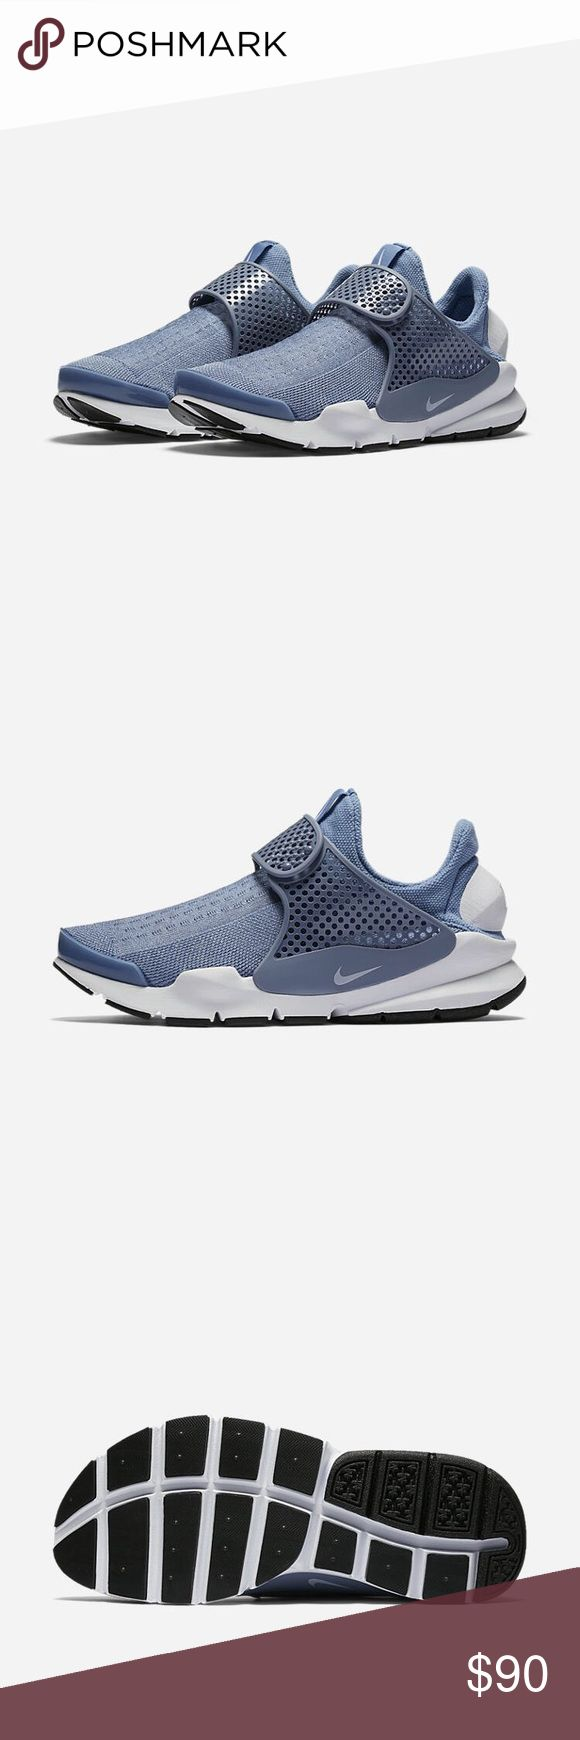 Nike Sock Dart SLIP ON. STRAP IN. The Nike Sock Dart Women's Shoe knocks your socks off with a soft upper that surrounds your foot in comfort and just enough structure to add stability.  SECURE, SOCK-LIKE FIT Flexible, breathable mesh helps keep your feet cool and comfortable, while the molded midfoot strap with adjustable closure provides a personalized fit.  SOFT CUSHIONING Full-length Phylon foam underneath your foot offers lasting, cushioned comfort. Nike Shoes Athletic Shoes